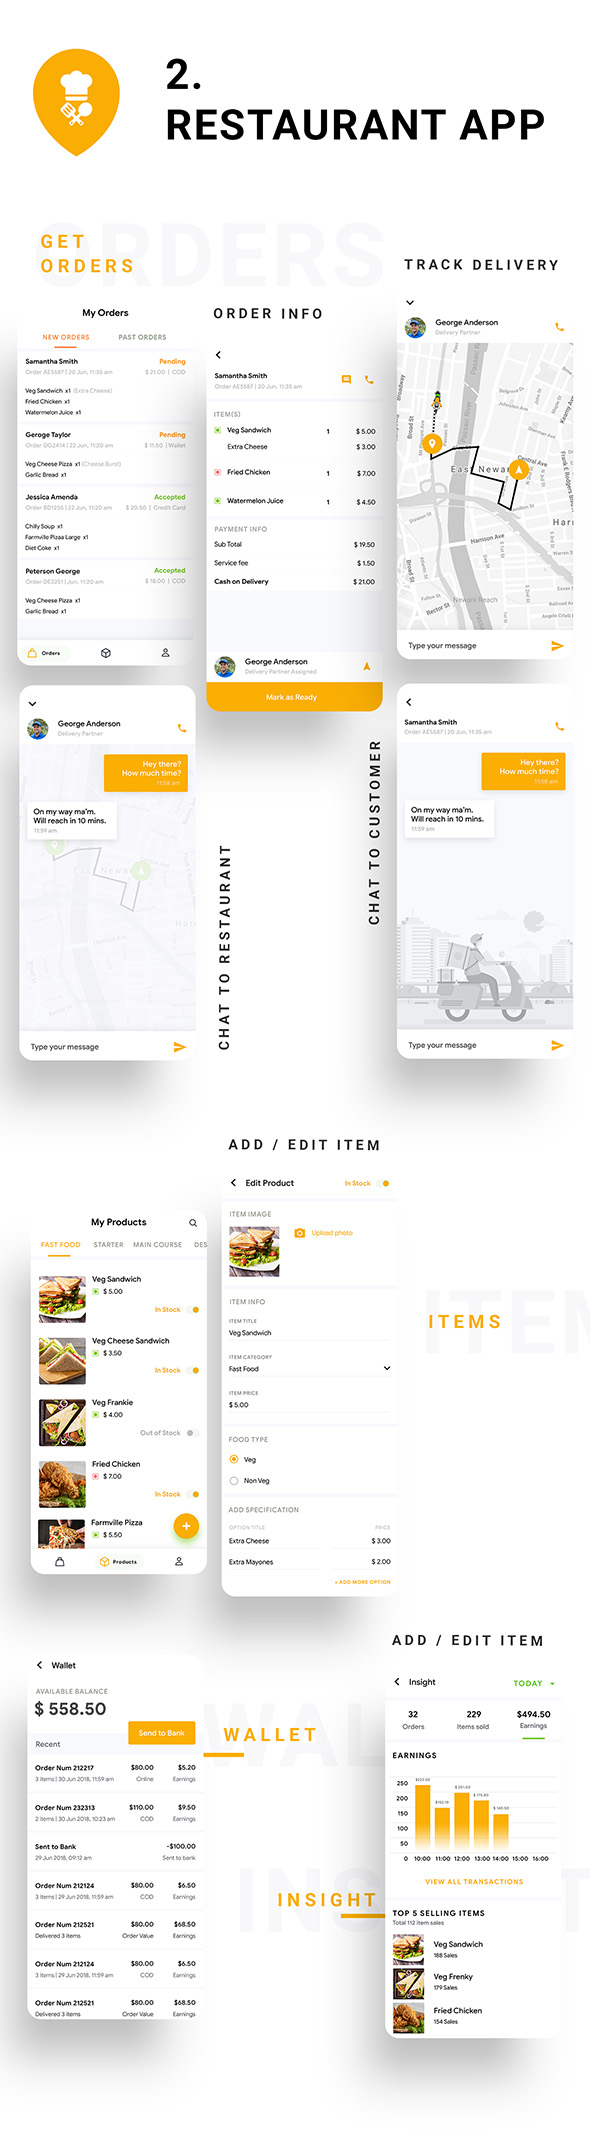 8 in 1 multi Restaurant Food Ordering App|Food Delivery App|Android+iOS App Template|Flutter Hungerz - 11